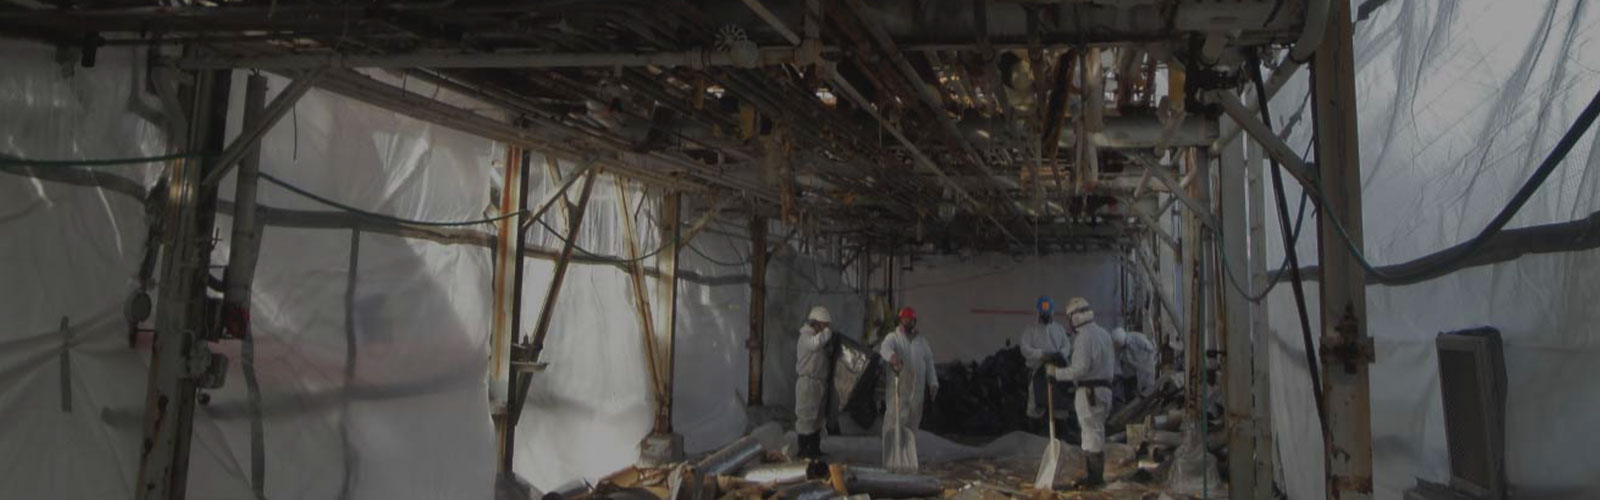 Asbestos Removal and Remediation